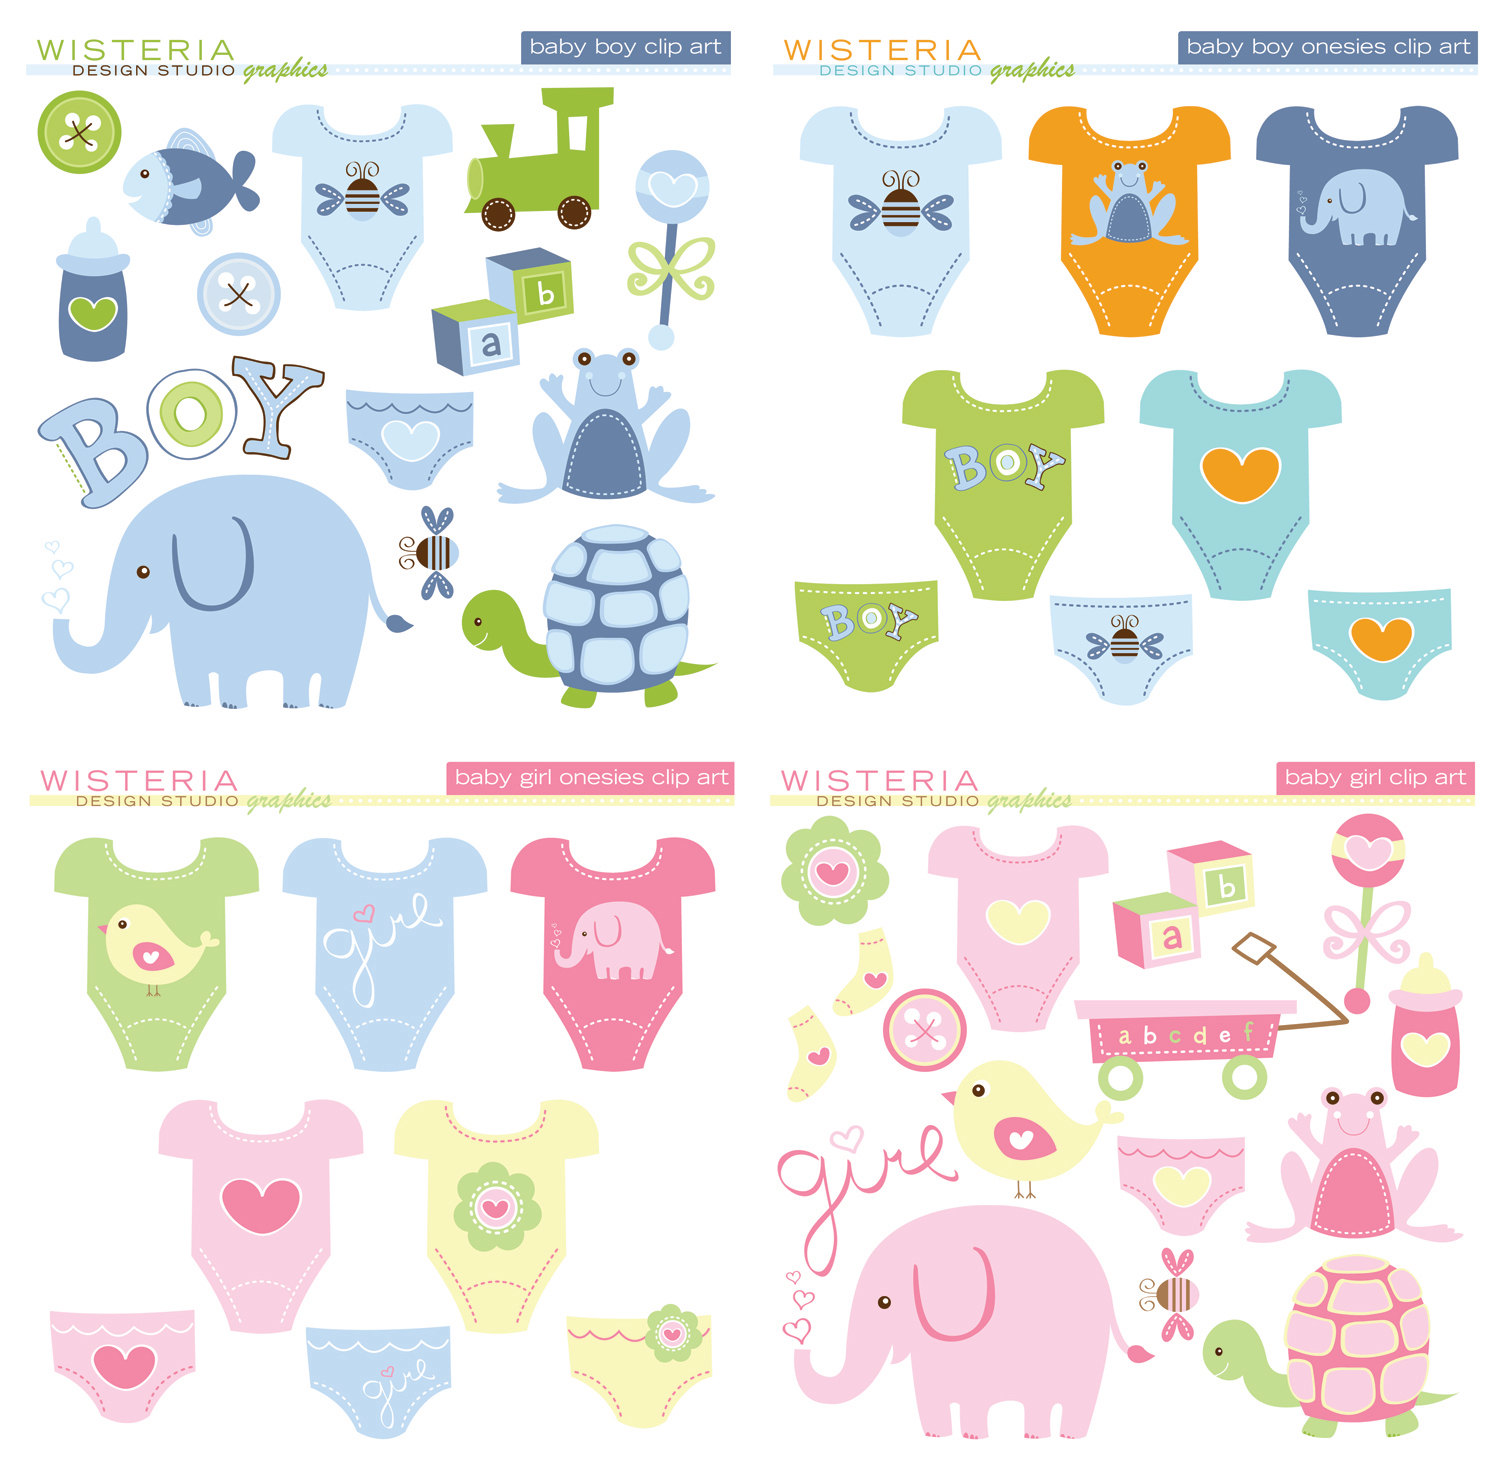 Boy baby gifts clipart.